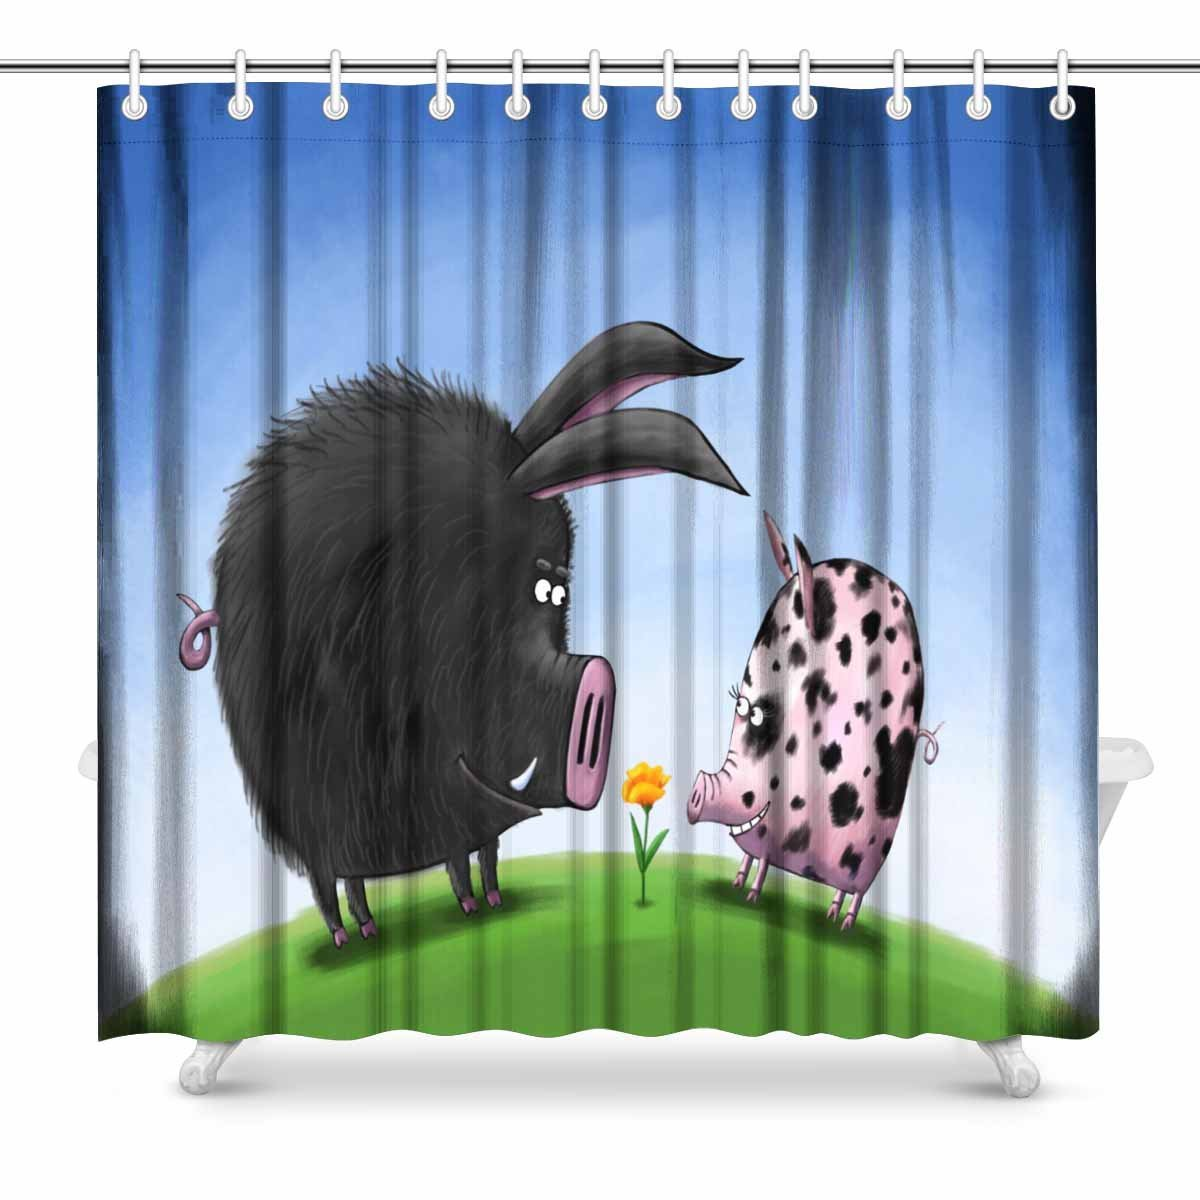 Modest Aplysia Two Pigs Male And Female In Love Looking At A Cute Yellow Flower In The Meadow Bathroom Accessories Shower Curtains Health & Beauty